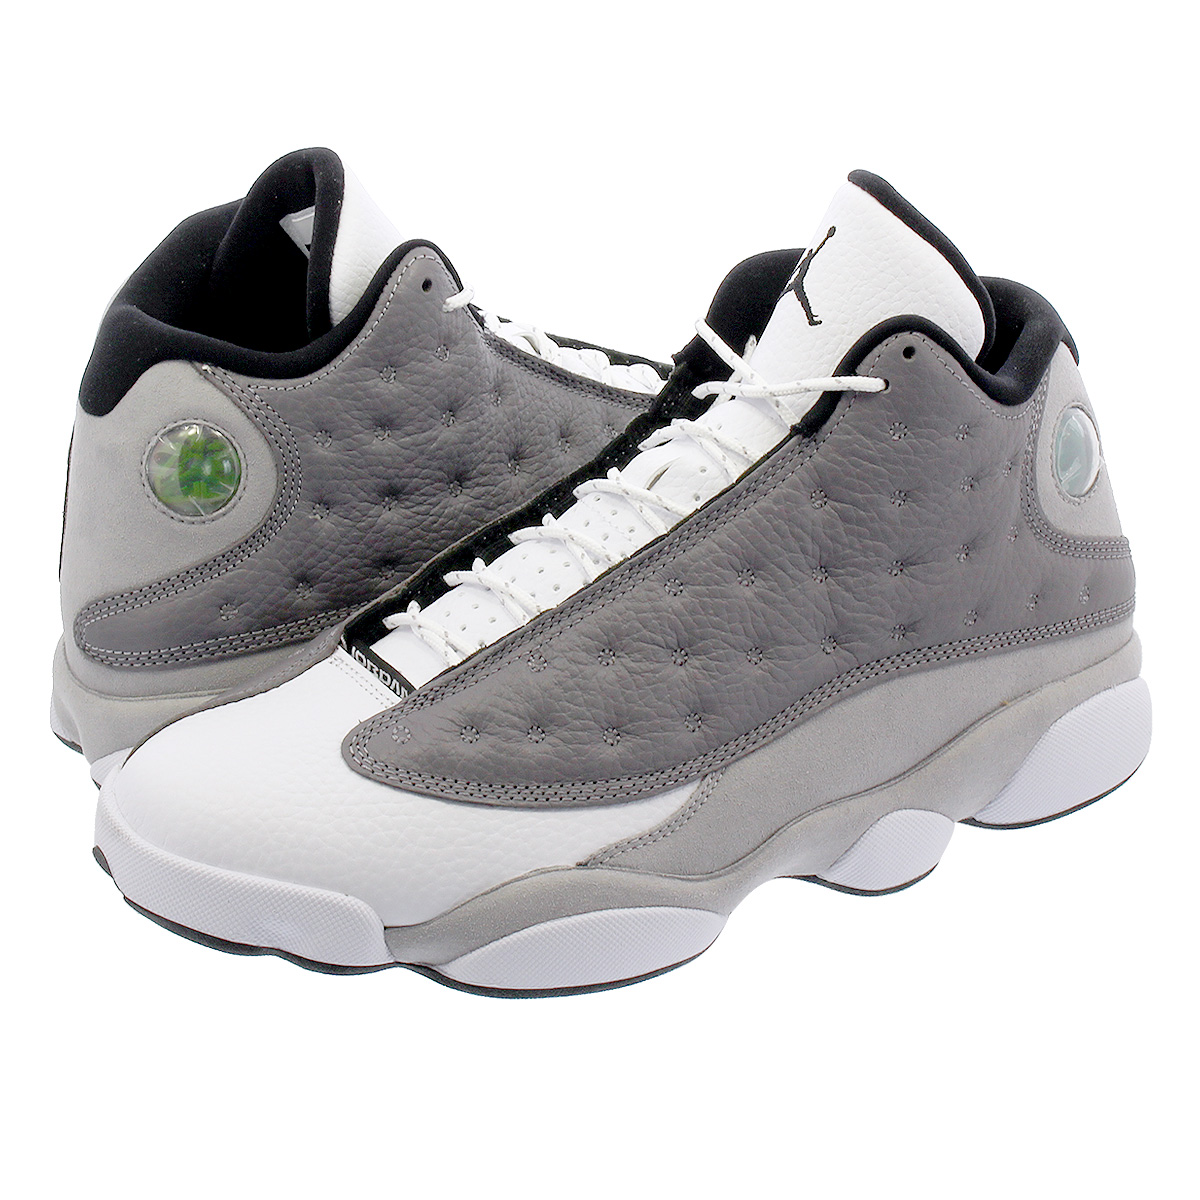 3e161d0289c1ca NIKE AIR JORDAN 13 RETRO Nike Air Jordan 13 nostalgic ATMOSPHERE GREY BLACK WHITE  414